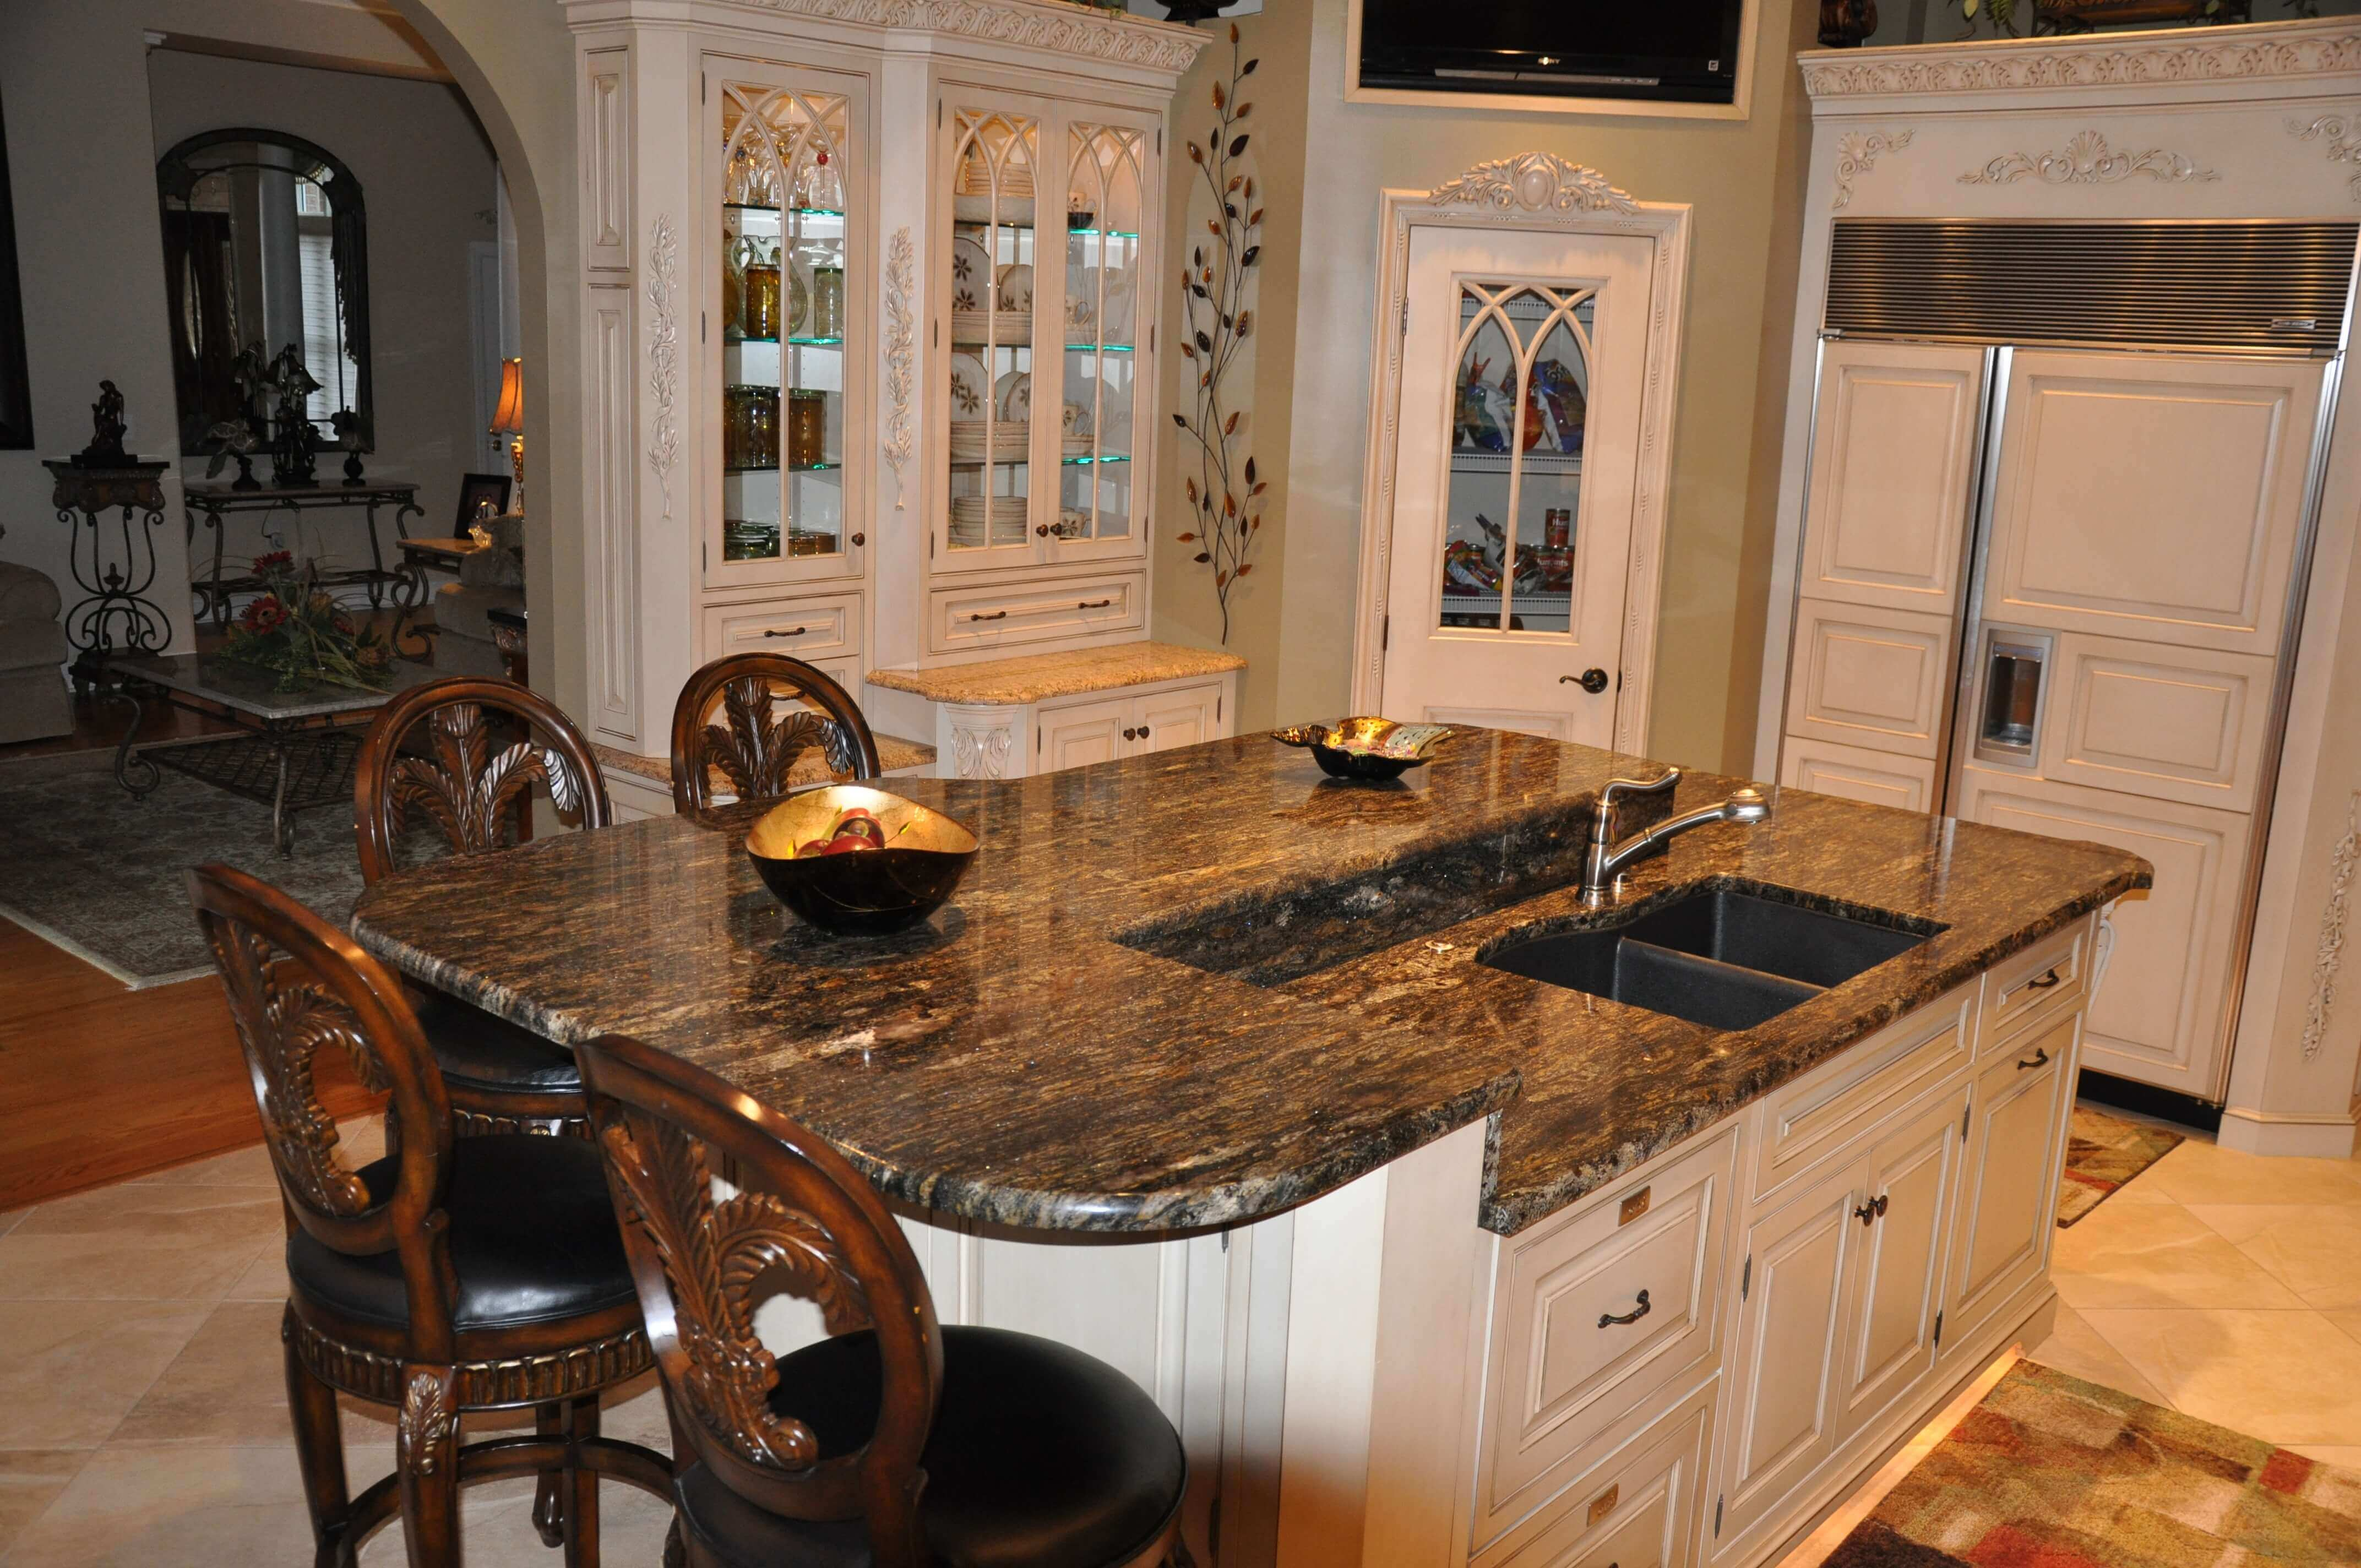 With natural marble top and traditional country styling, this kitchen island with sink offers multiple levels that are both visually interesting and functional. It has a stainless steel faucet and seating for four